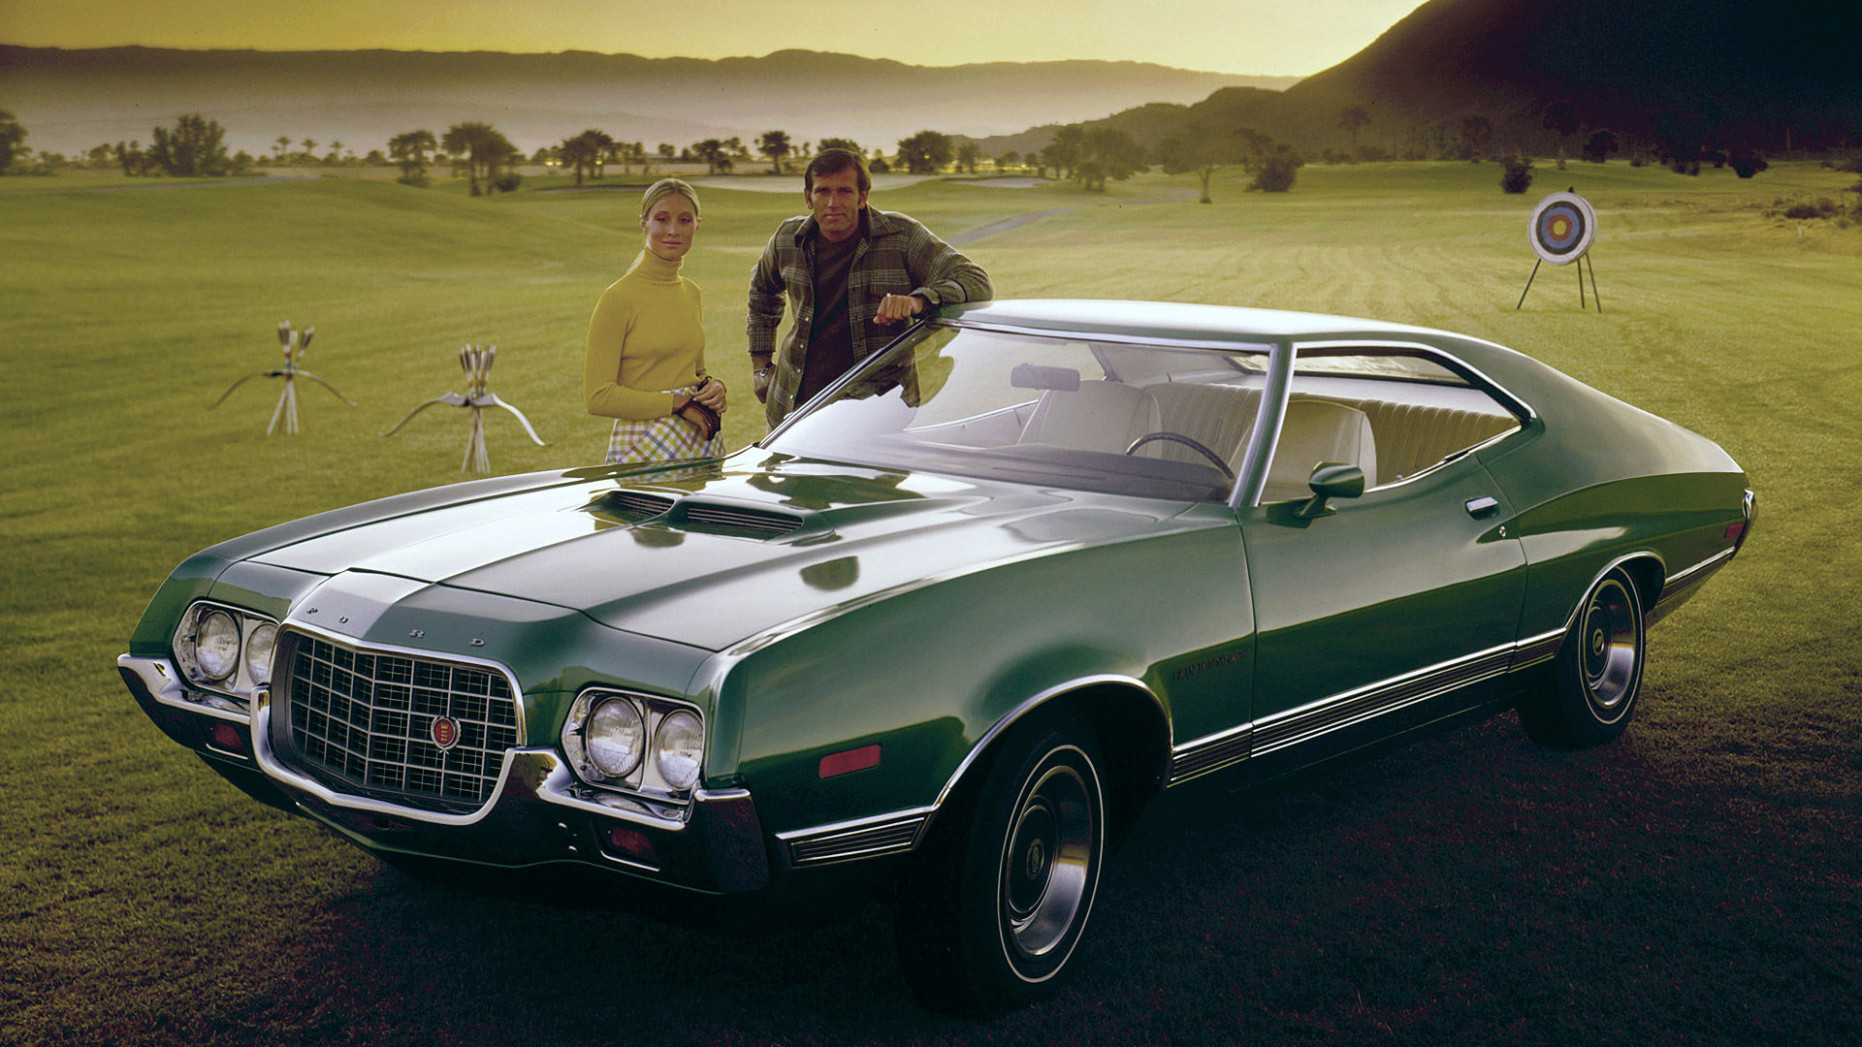 Configurations 2022 Ford Torino Gt